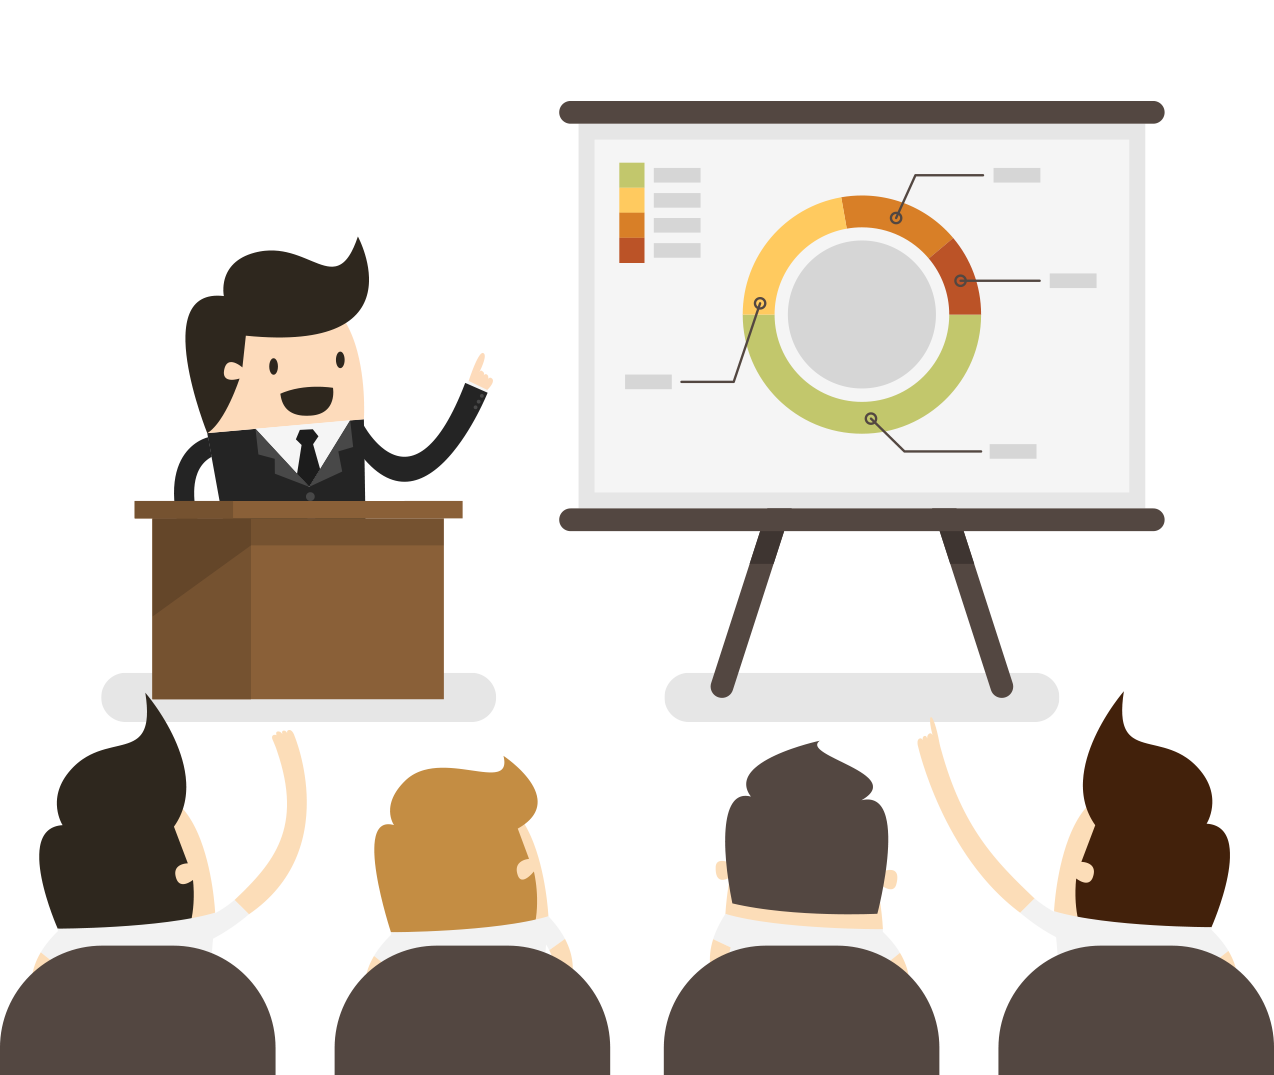 kisspng-presentation-microsoft-powerpoint-businessperson-s-report-of-the-meeting-5aa0b1a3be6a00.72382931152048067578